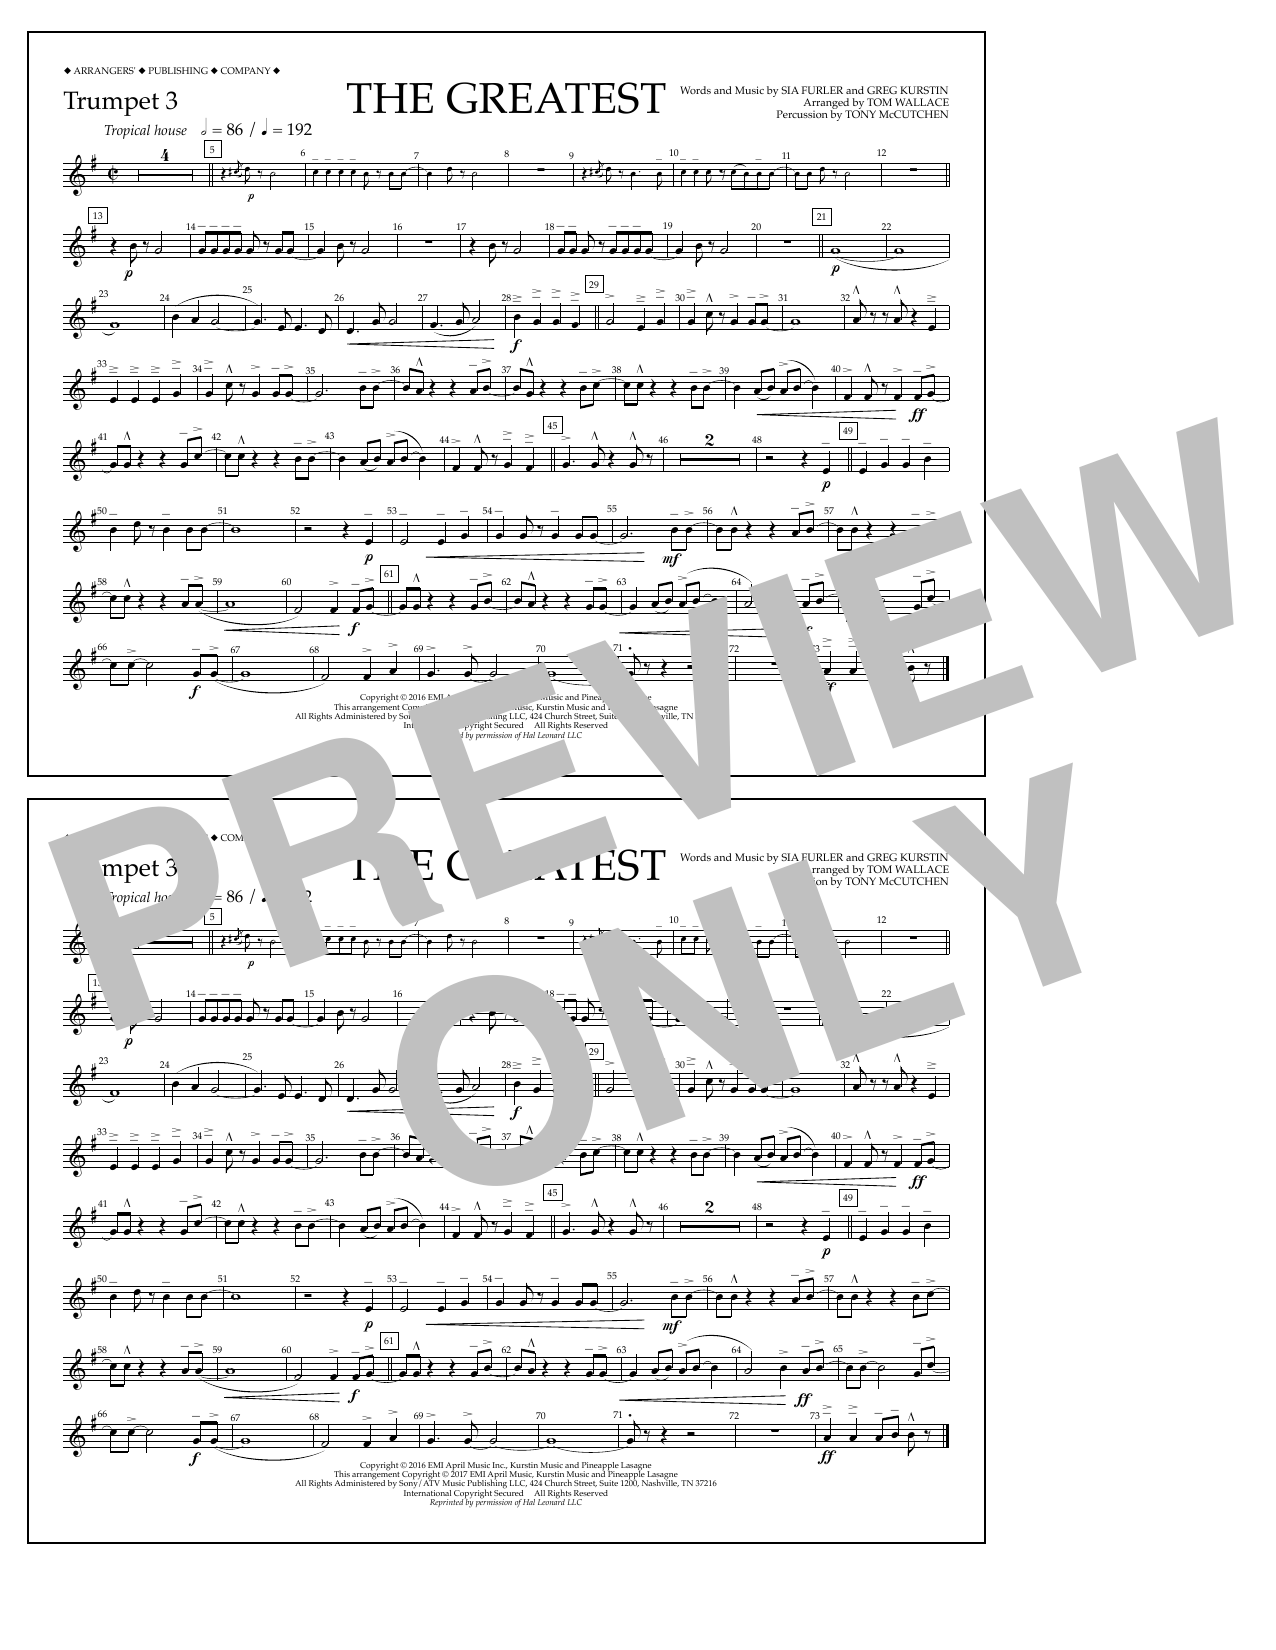 The Greatest - Trumpet 3 Sheet Music